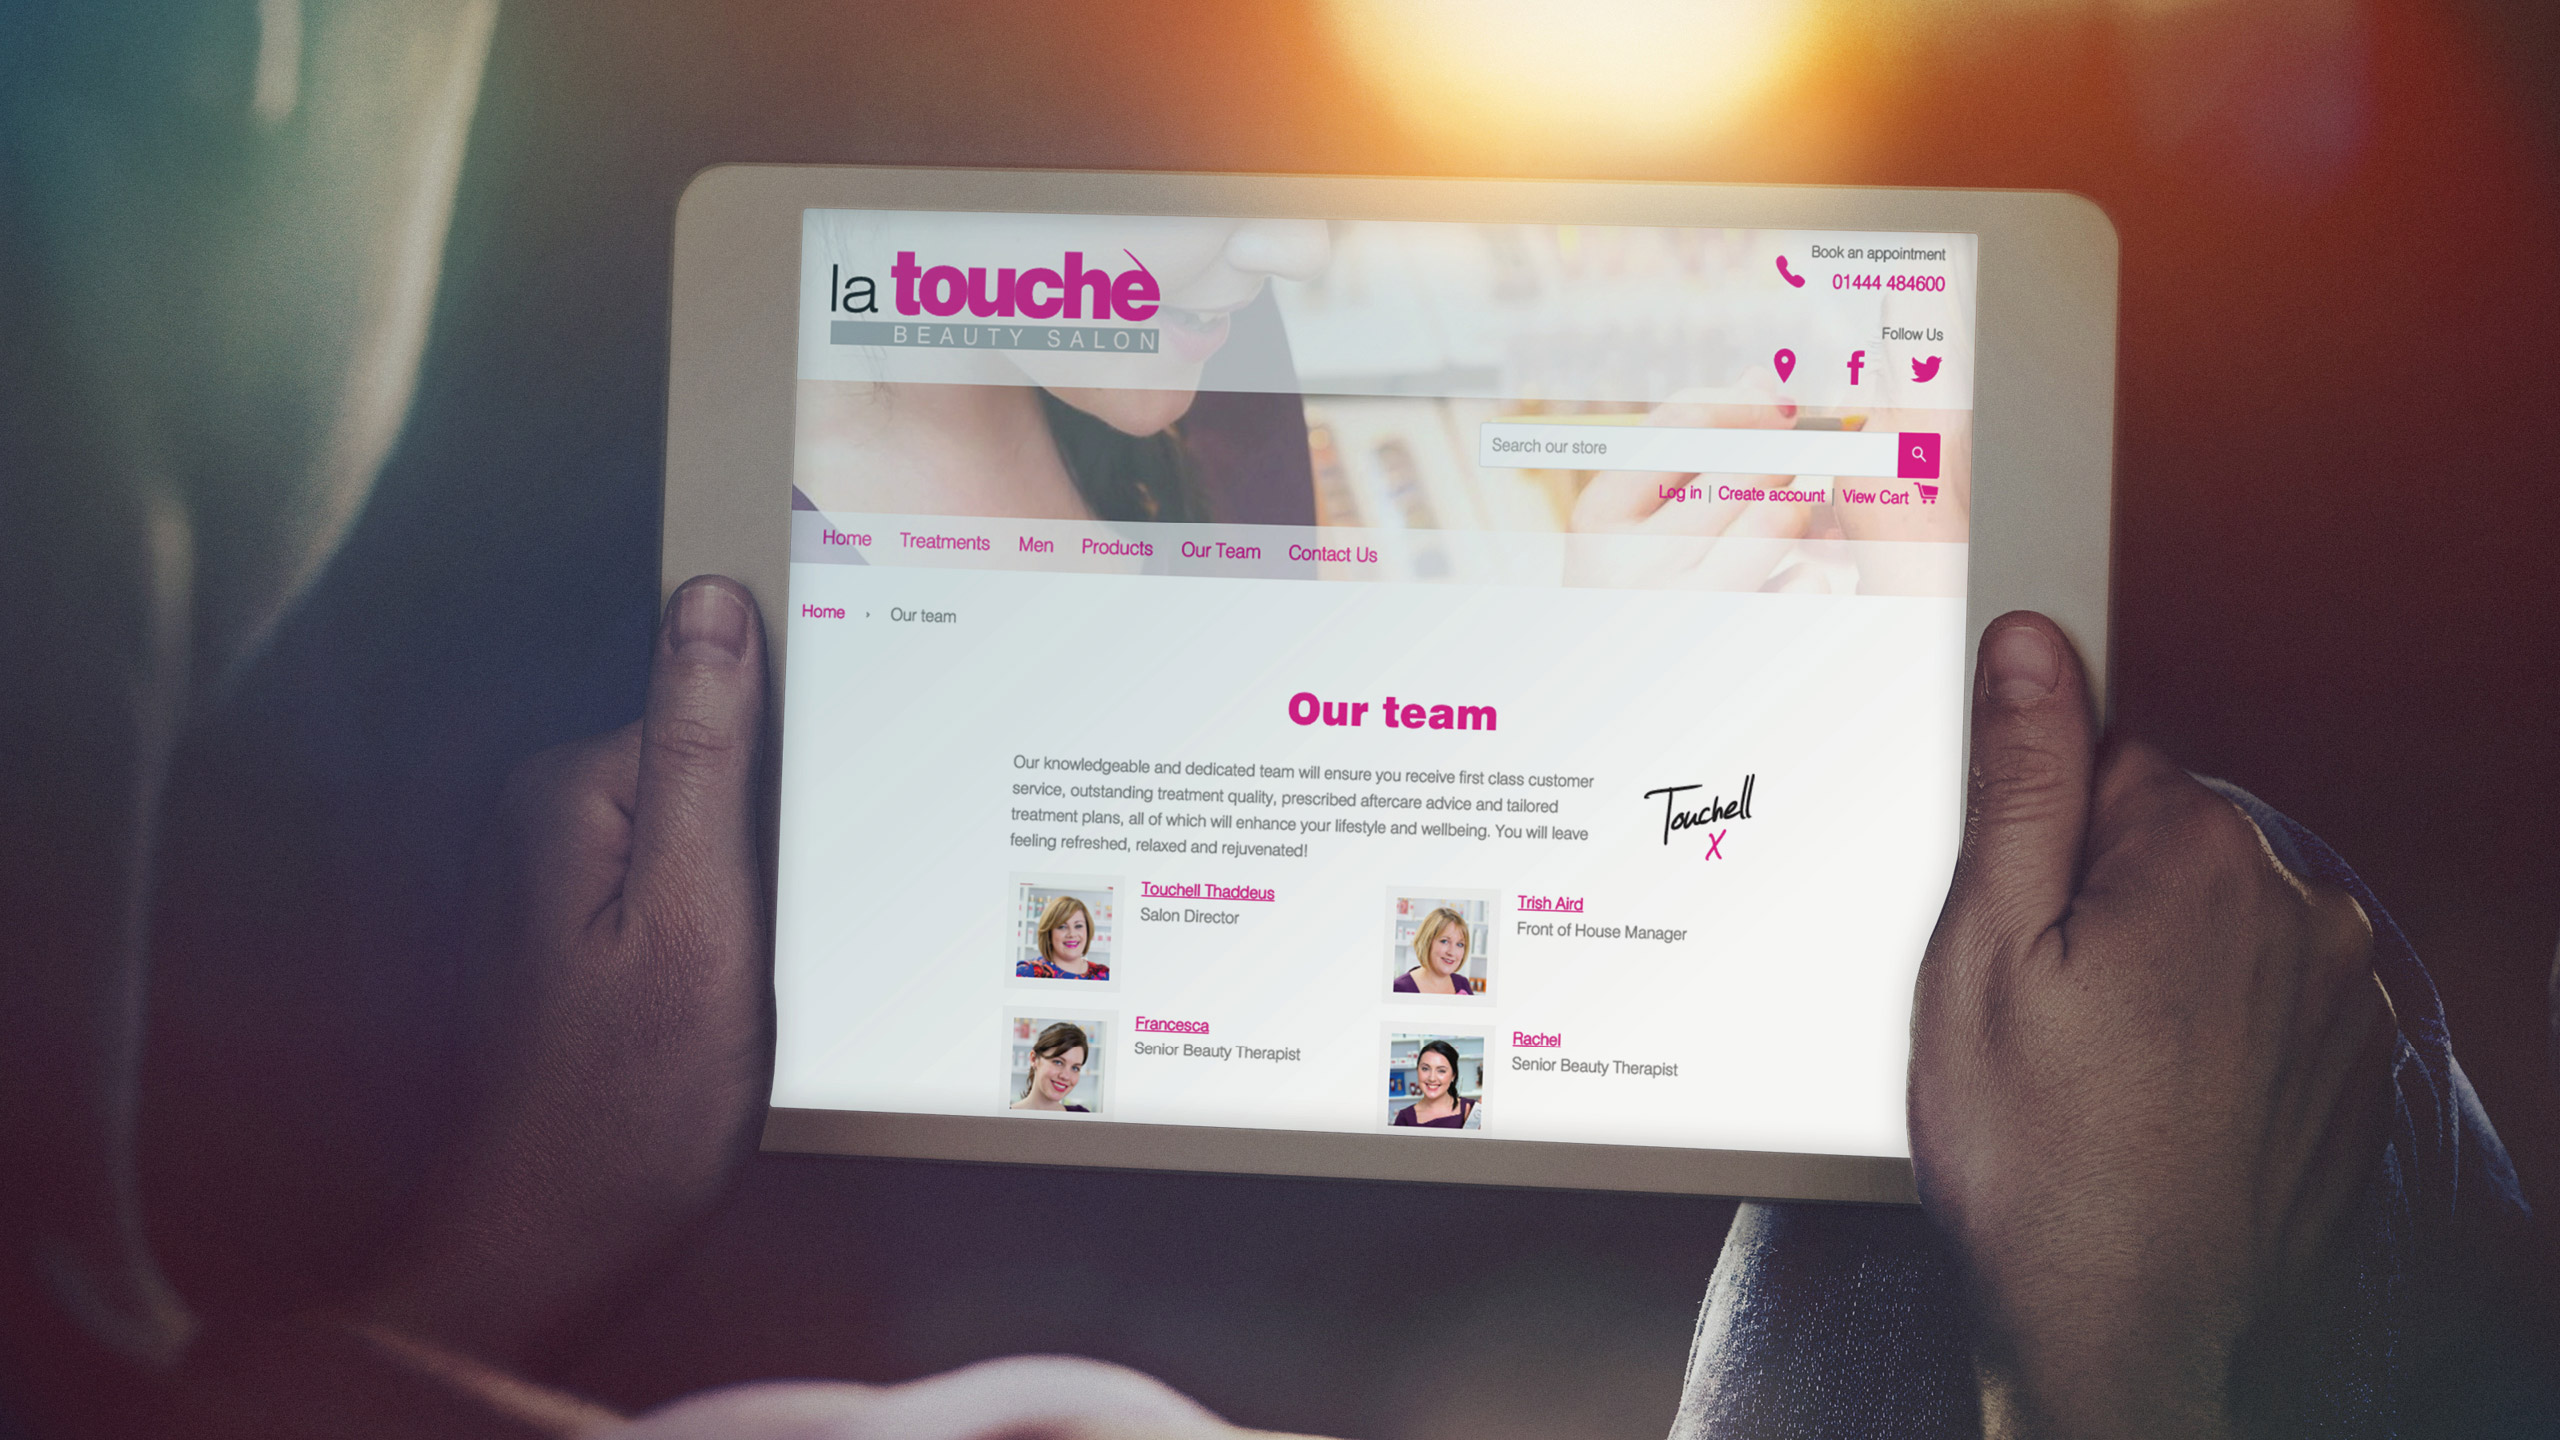 La Touche Tablet